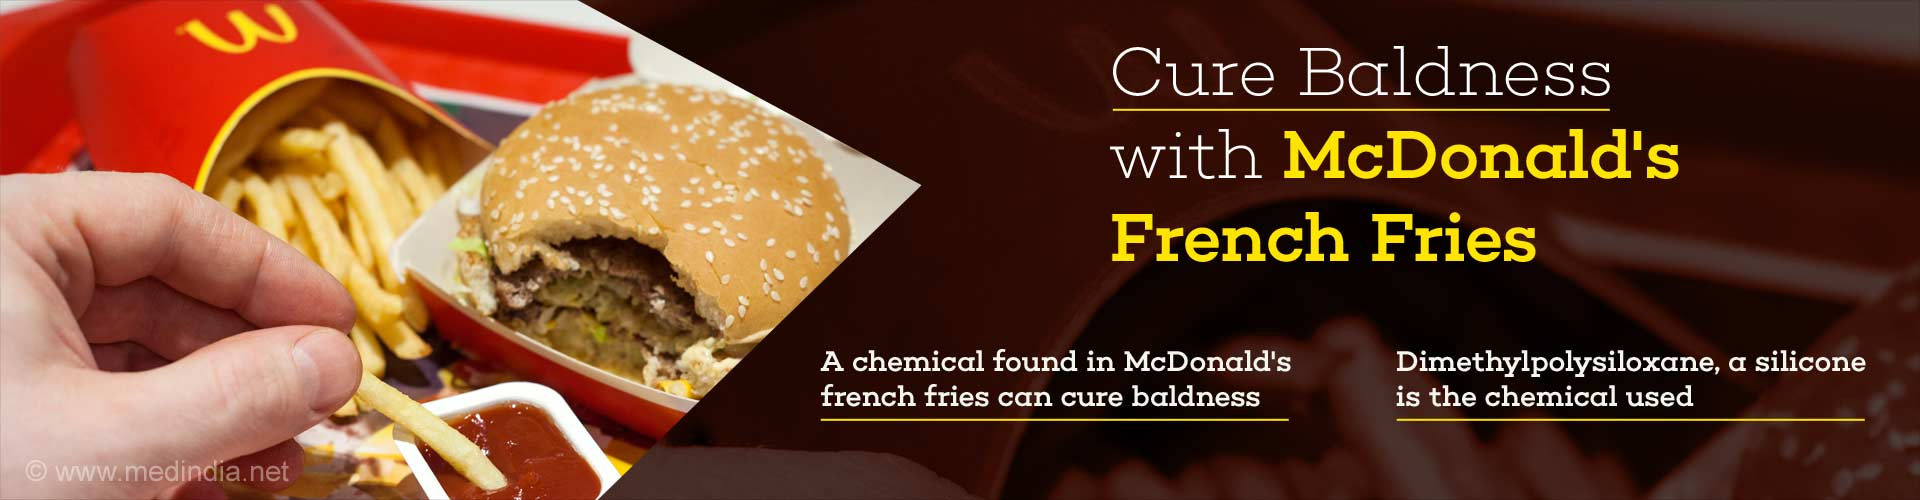 cure baldness with Mcdonald's french fries